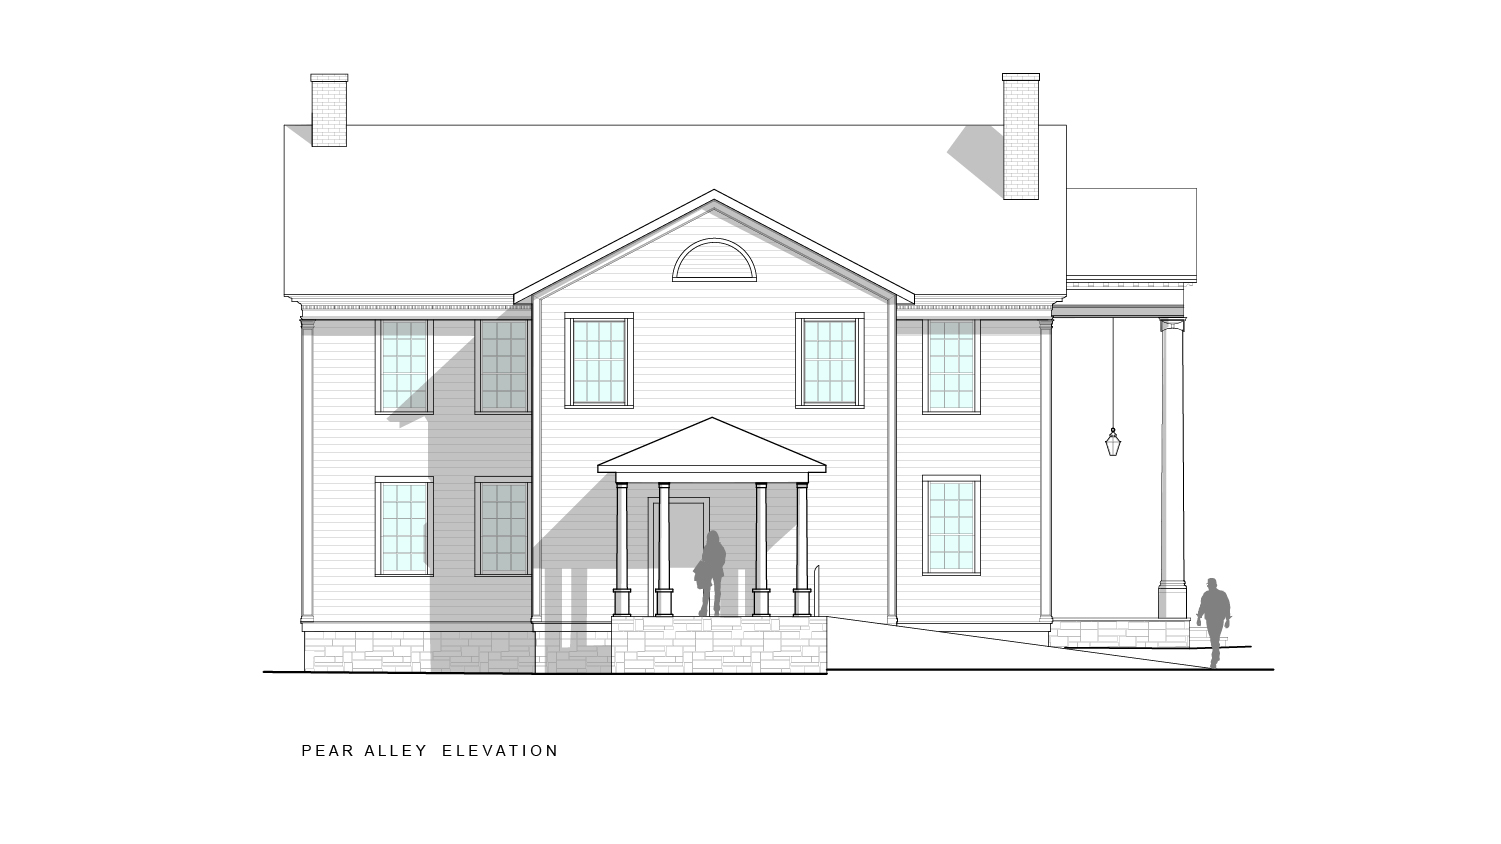 milford-community-house-pear-alley-elevation